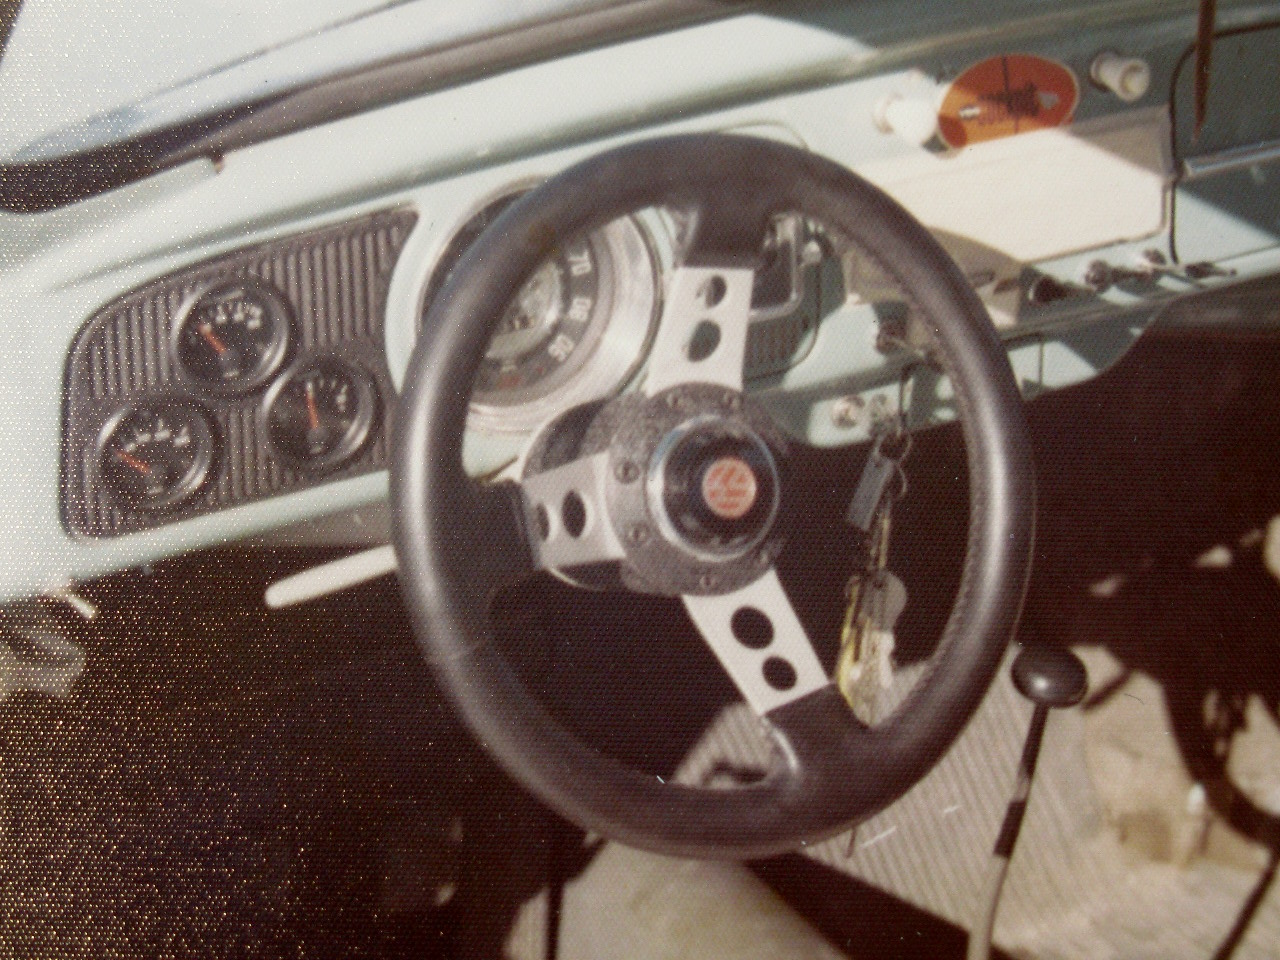 The dashboard with the additonal VDO instruments and spots leather steering